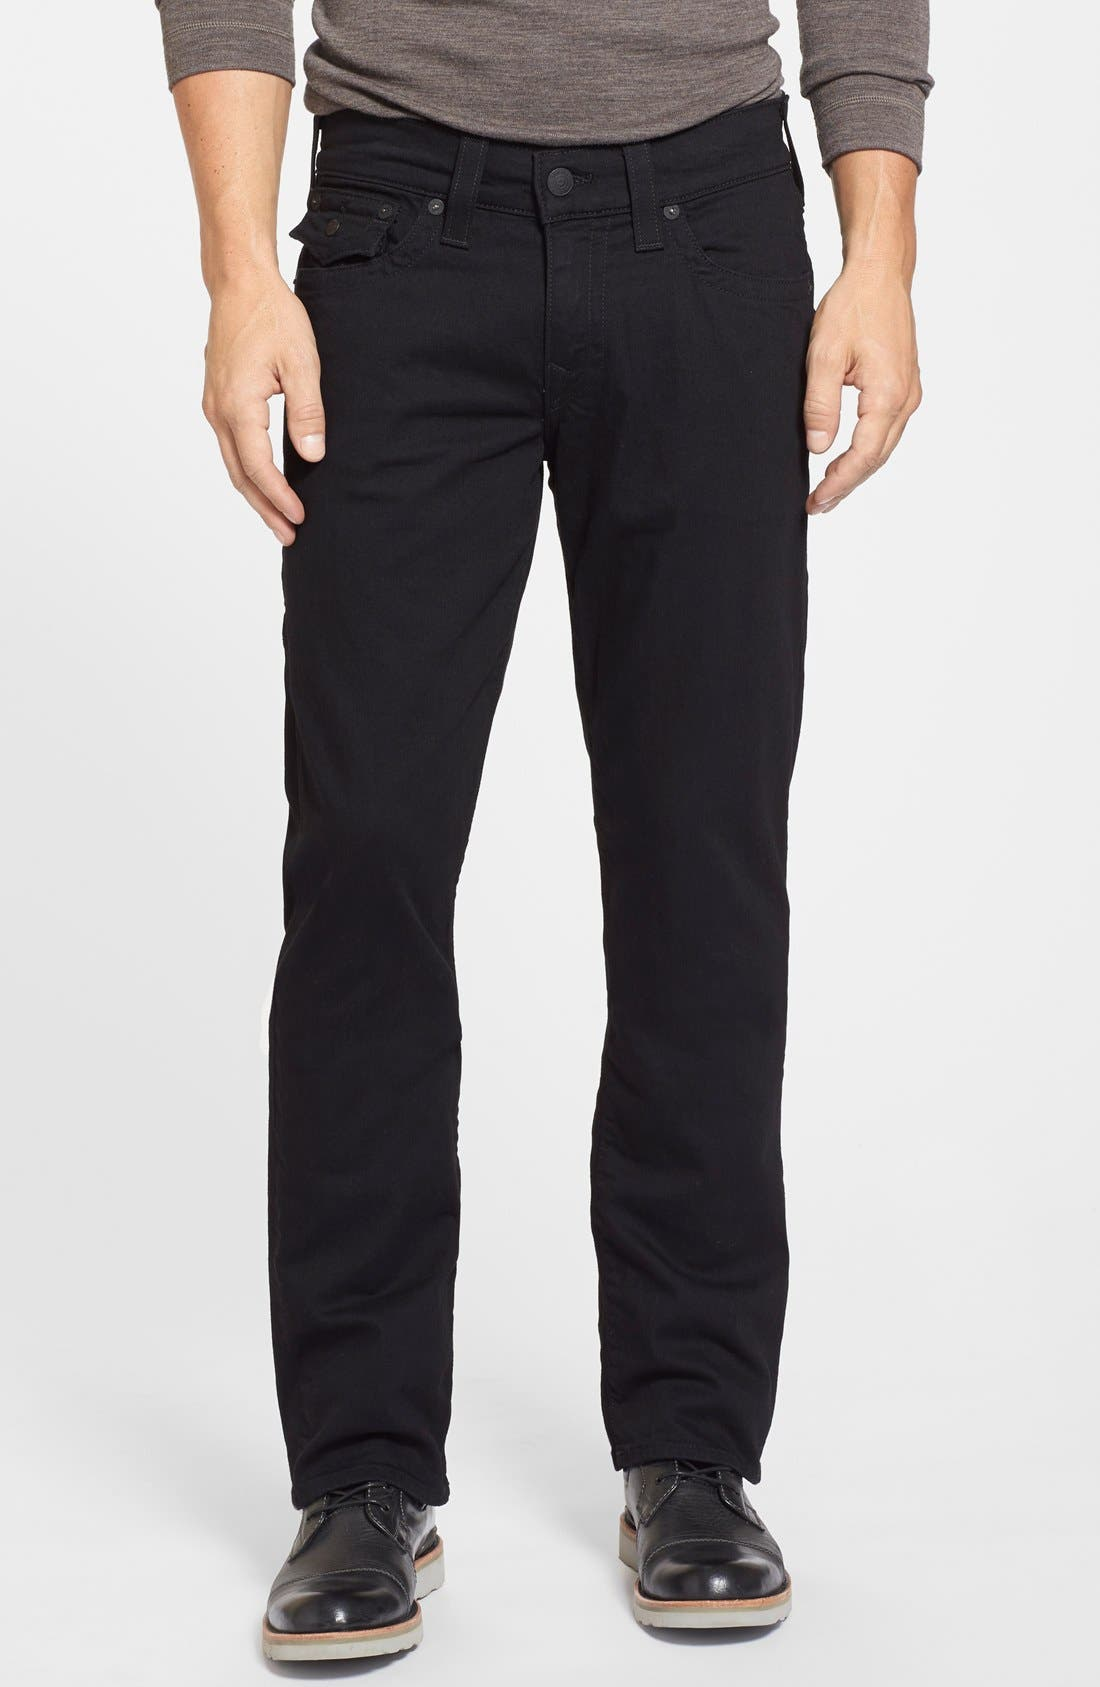 Alternate Image 1 Selected - True Religion Brand Jeans Ricky Relaxed Fit Jeans (Midnight Black)